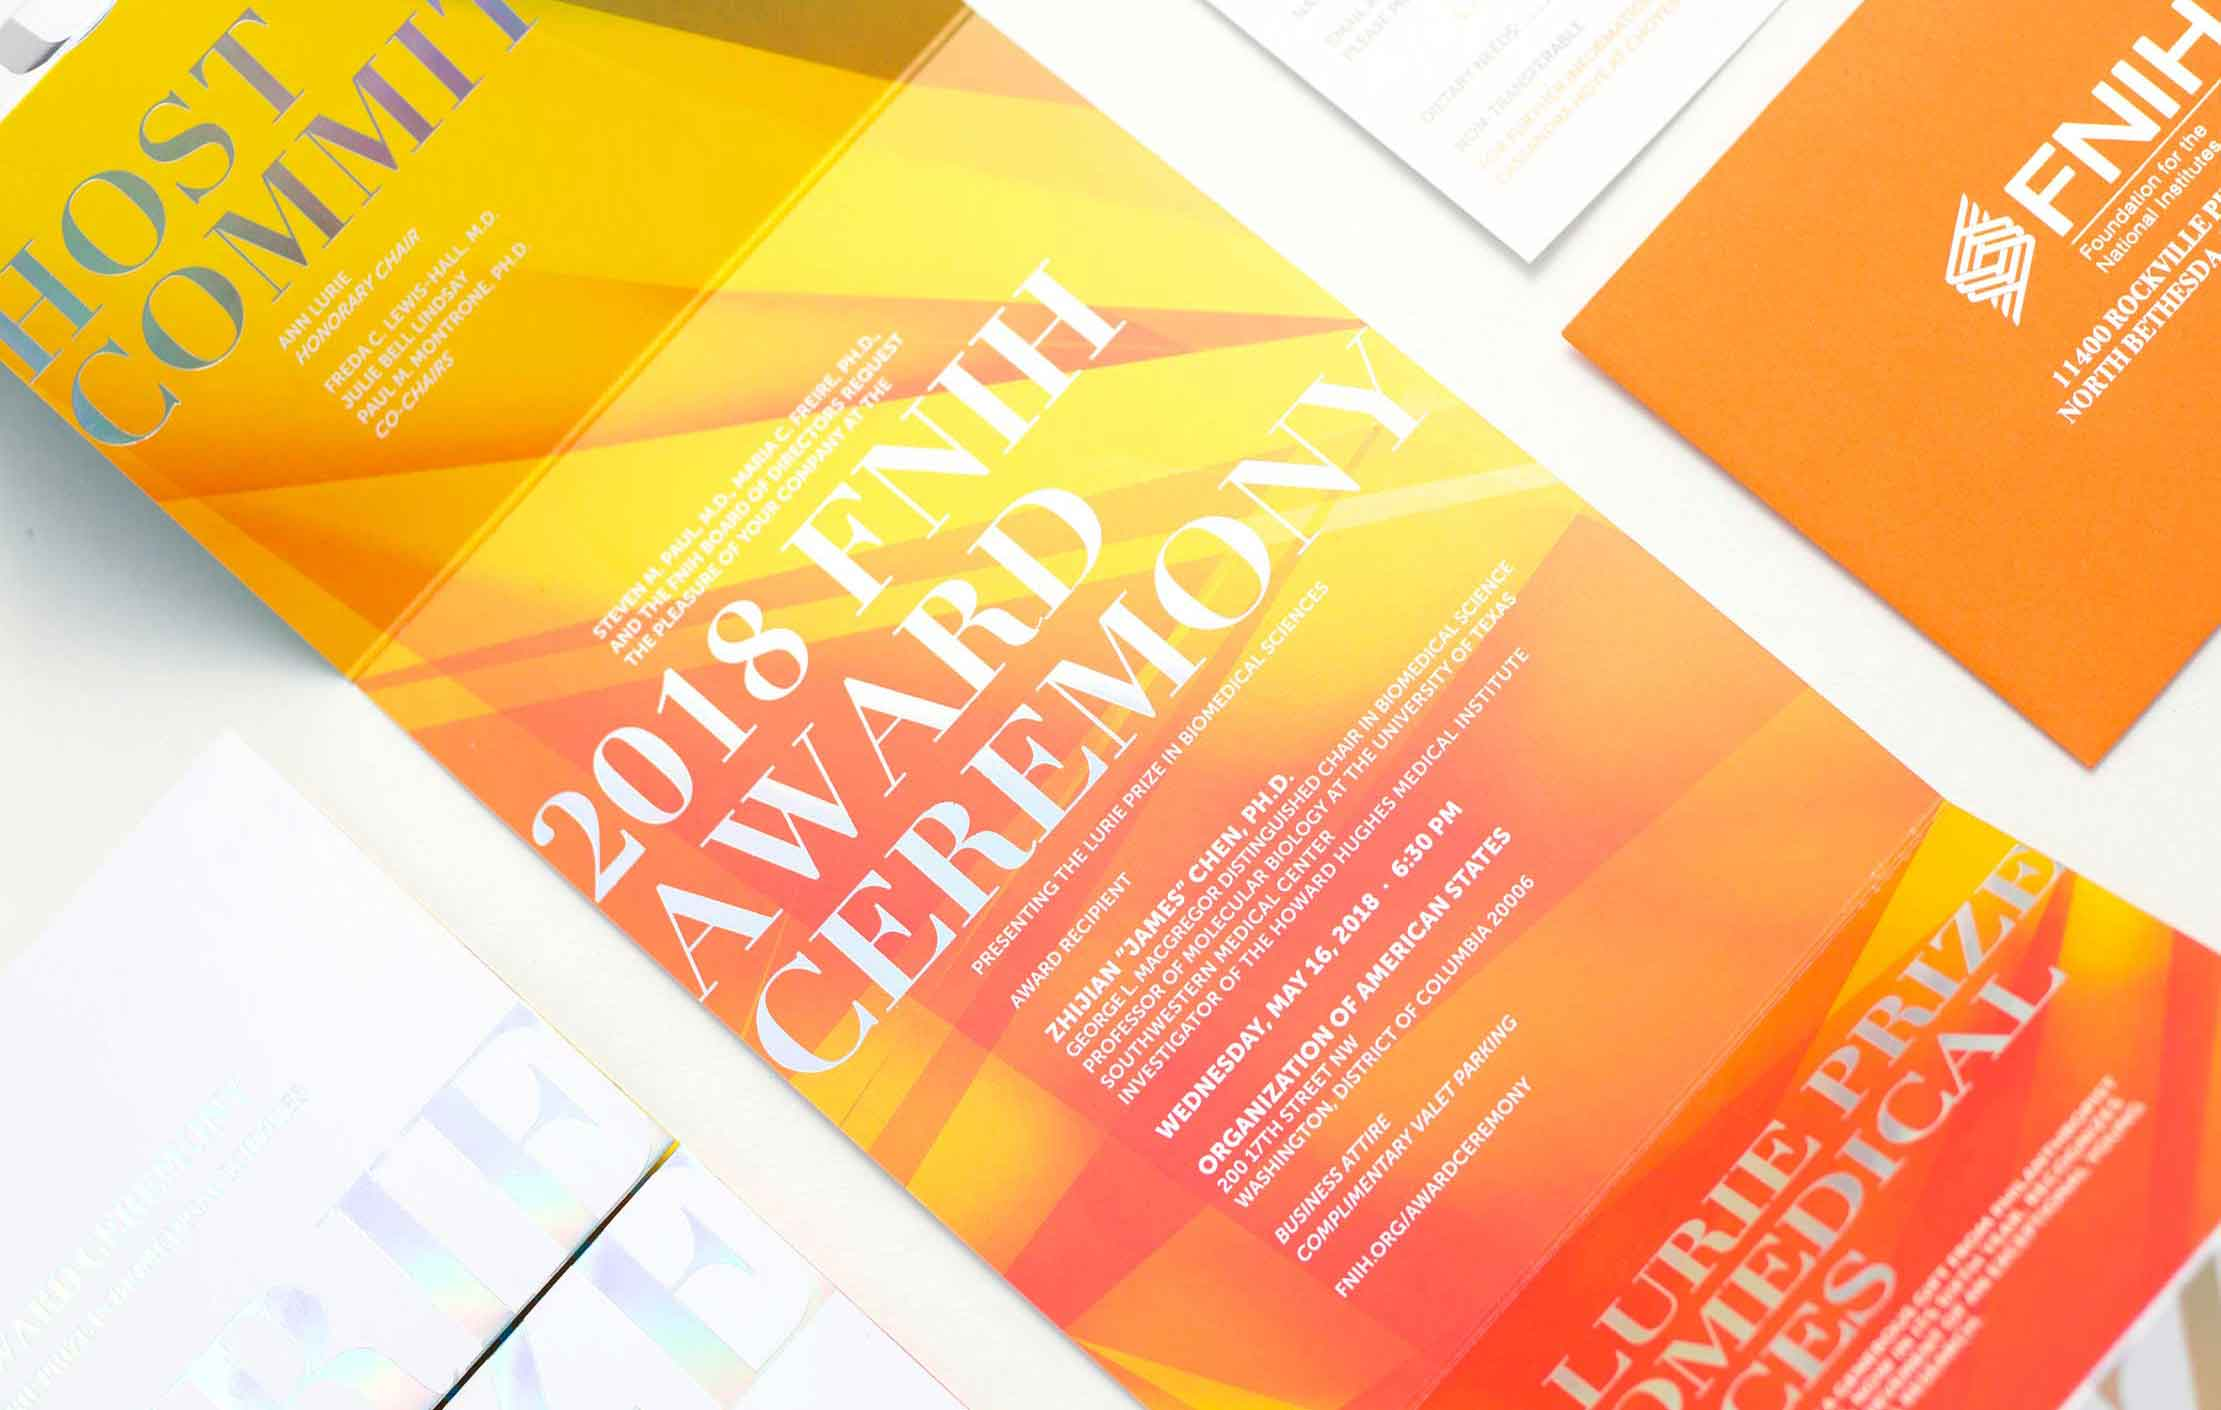 gala invitation event branding annapolis, md washington, dc graphic design